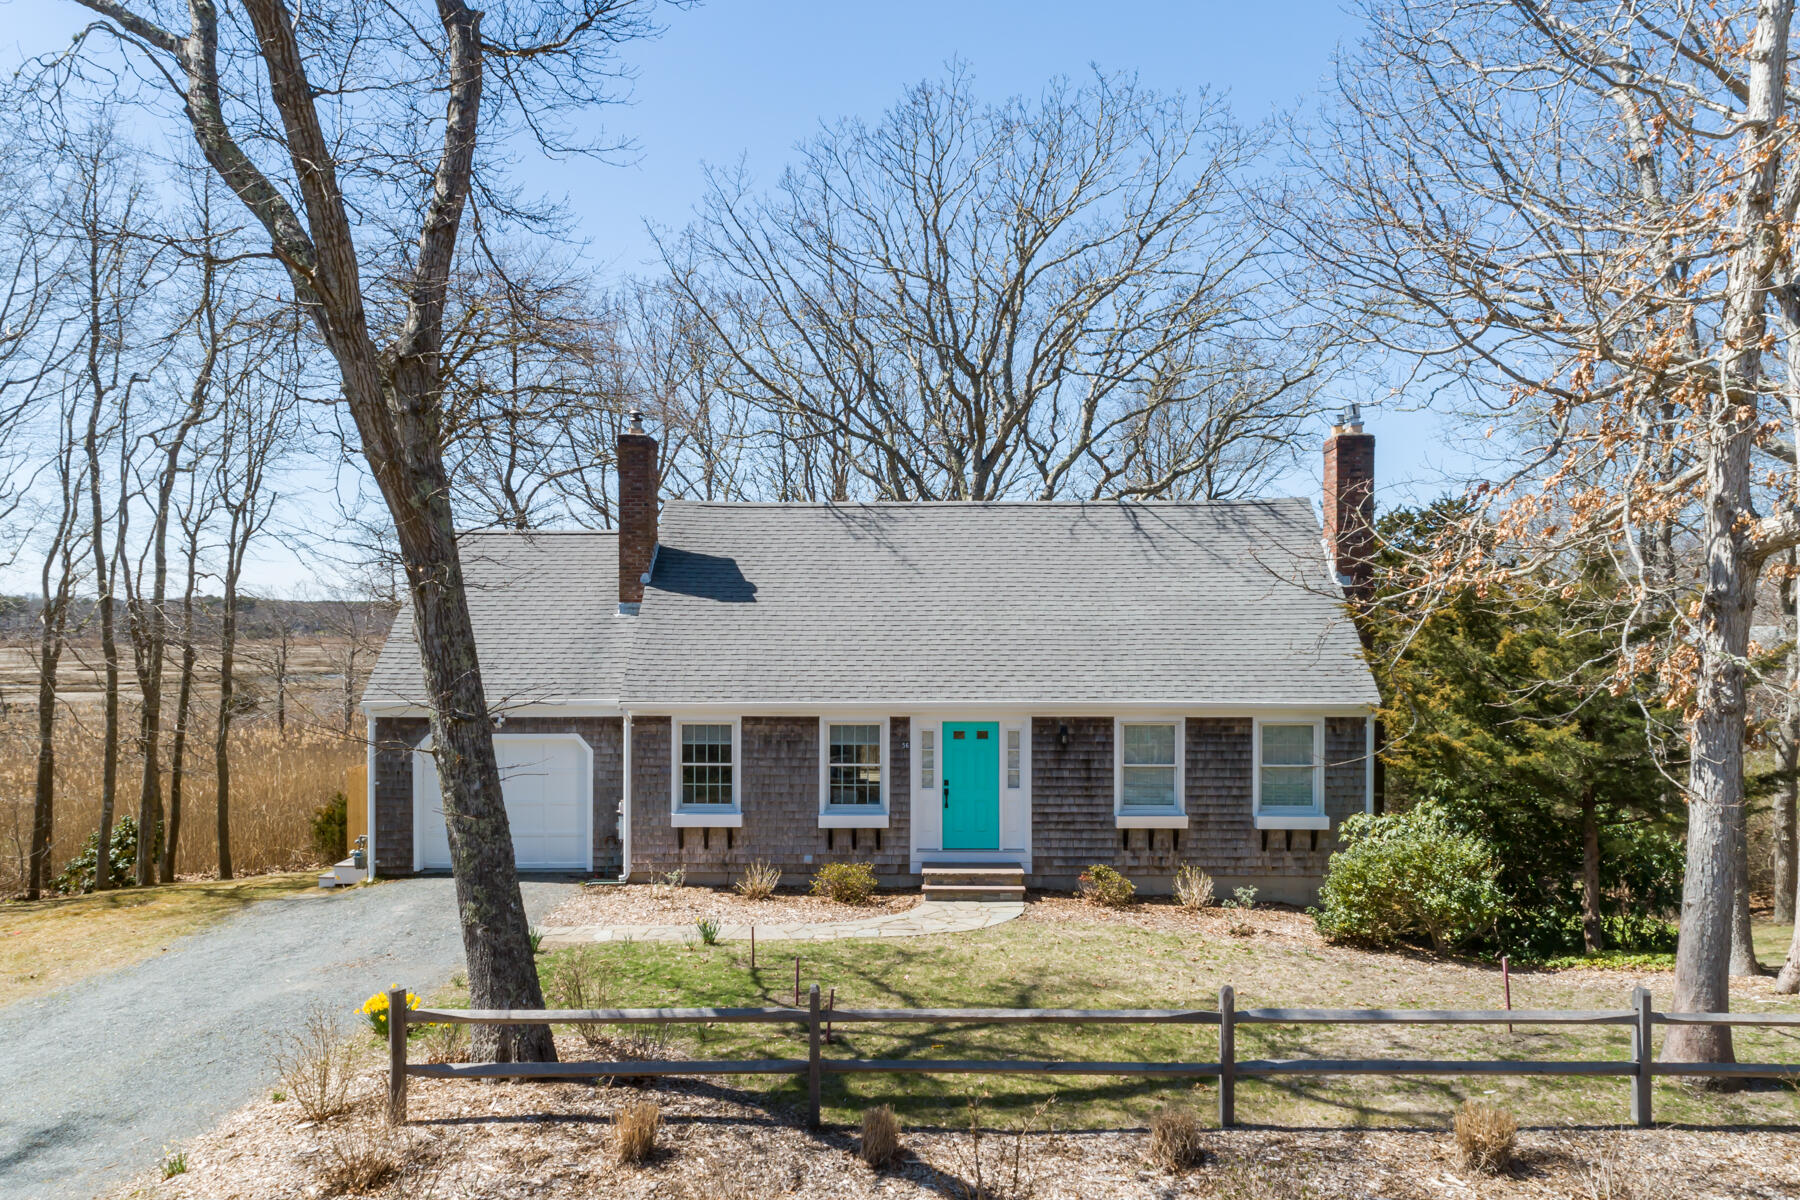 56 Captain Linnell Road, Orleans MA, 02653 details